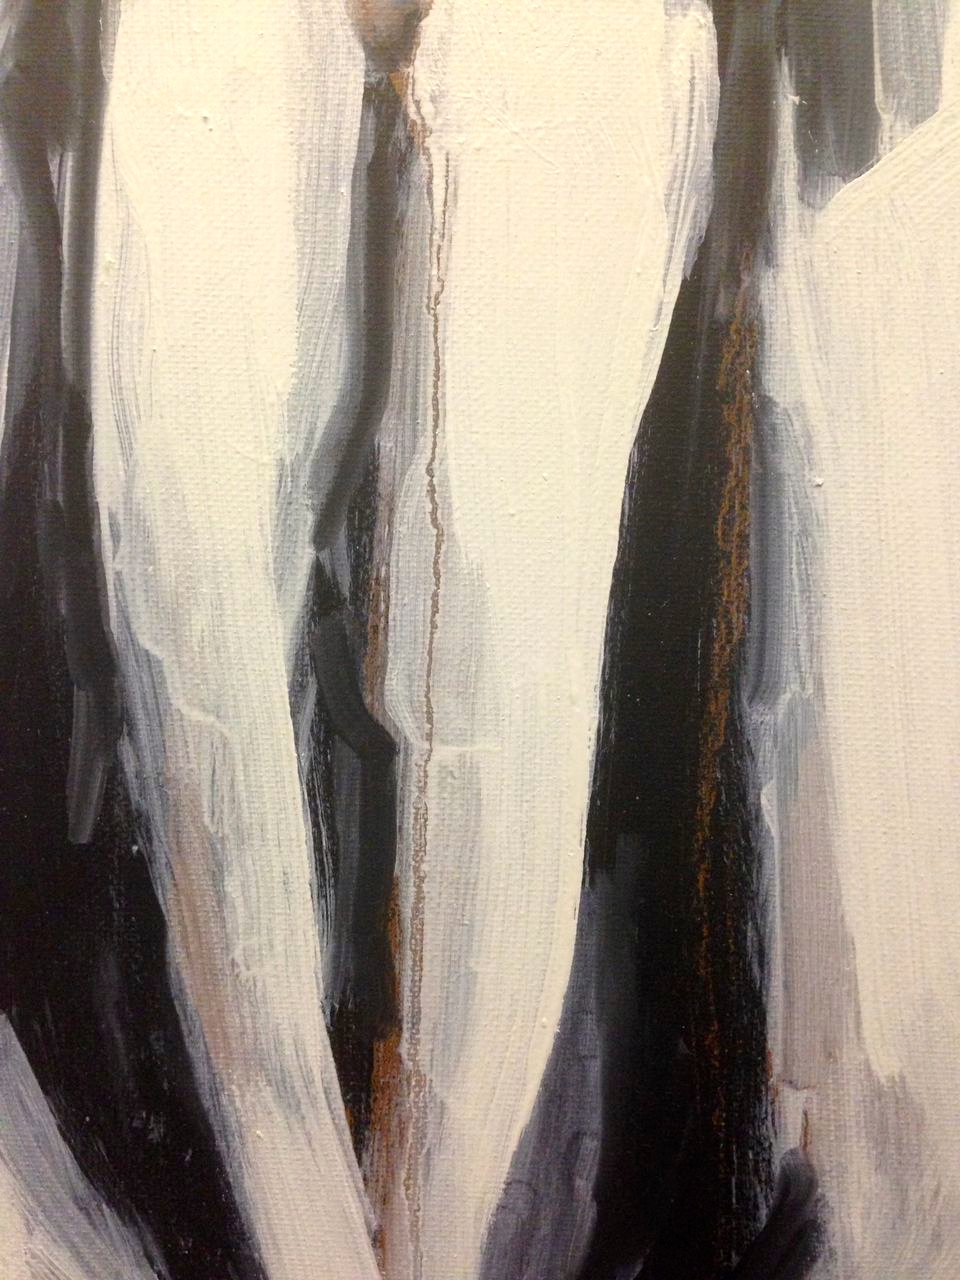 Estelle Standing (third stage) detail 5 JONATHAN ELLIS  oil and acrylic on canvas 5 December 2014